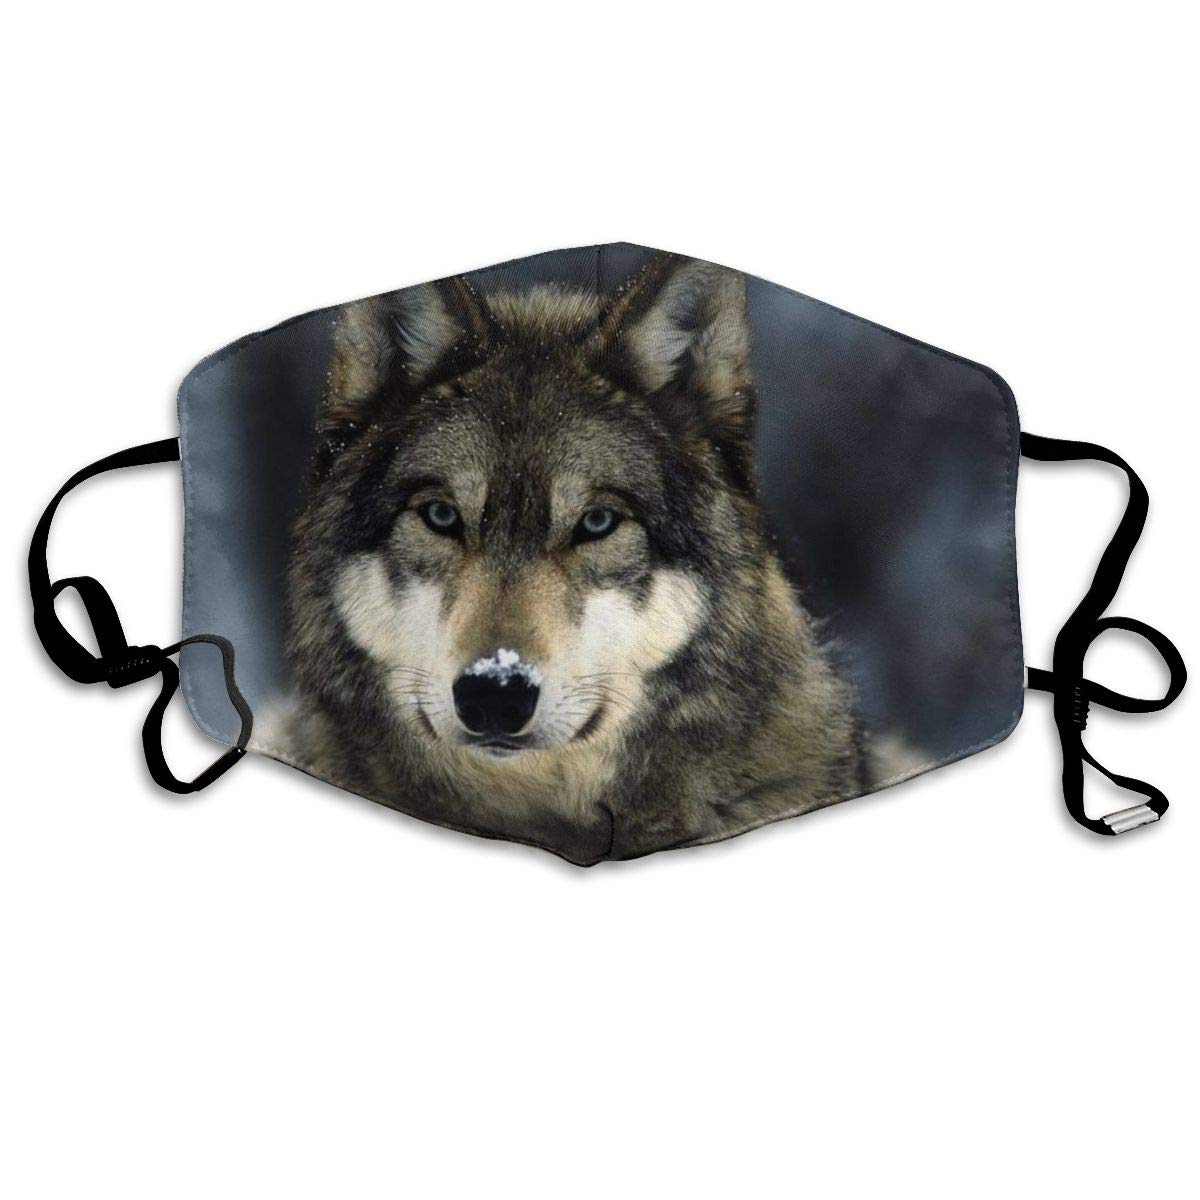 NiYoung Unisex Breathable Wolf Mouth Mask, Adjustable Earloop   Anti Dust Pollution Face Mask For Running Cycling Travel Skiing